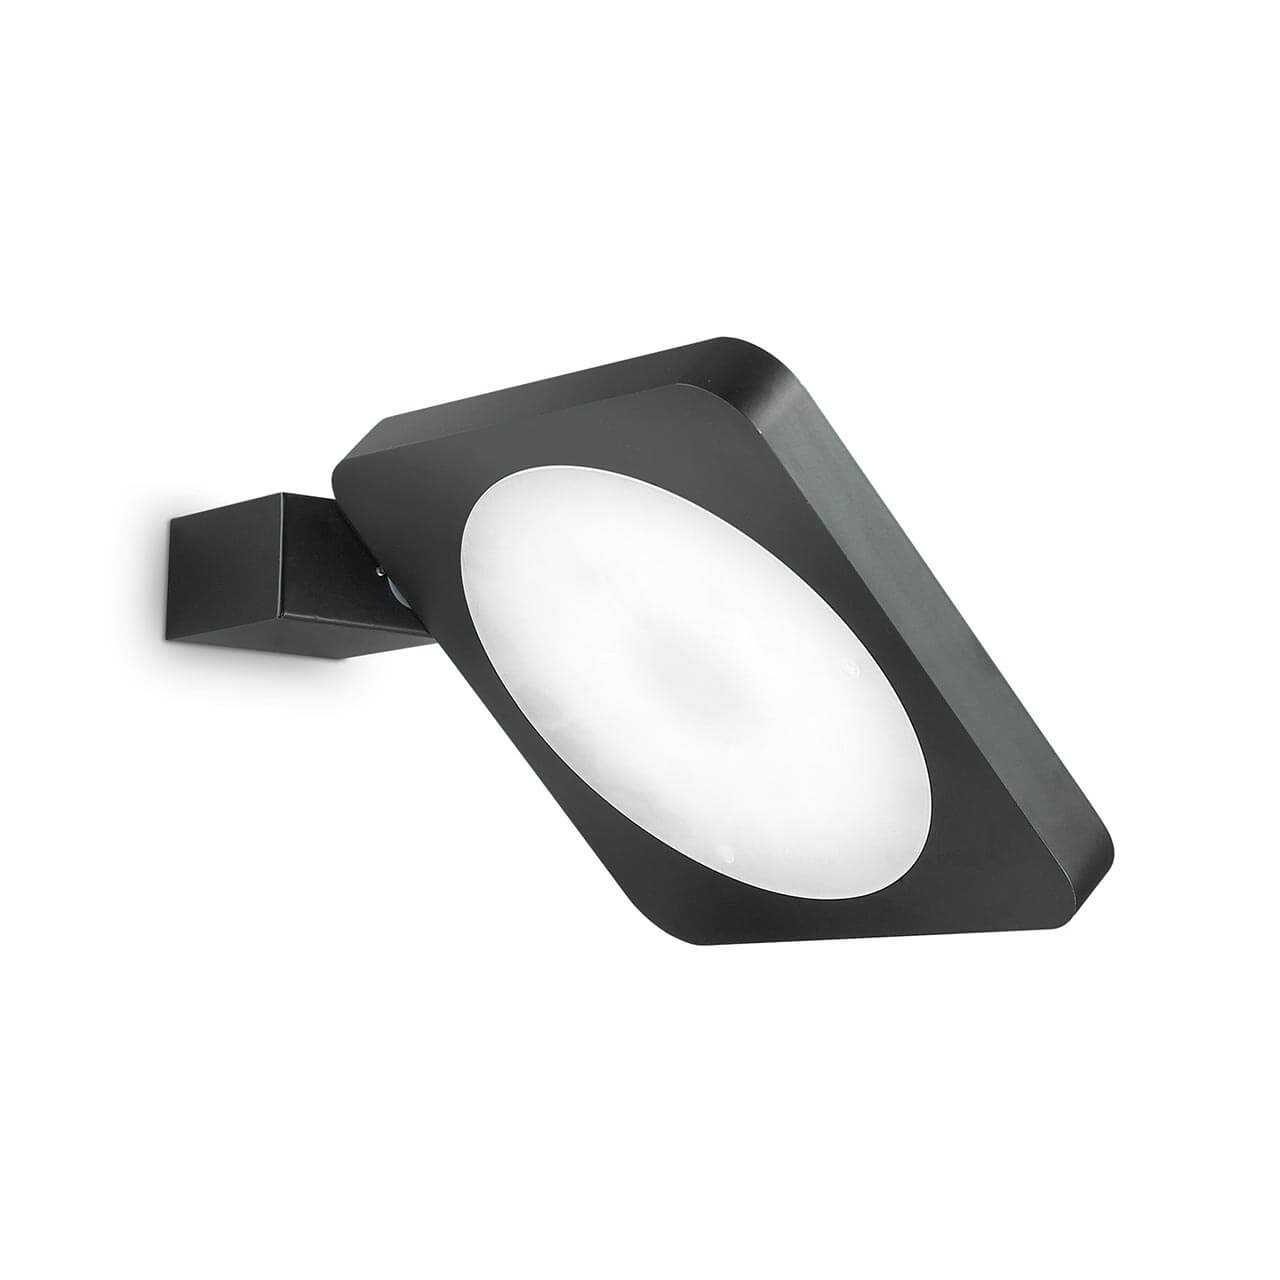 Бра Ideal Lux Flap AP1 Square Nero ideal lux бра ideal lux minimal ap1 nero